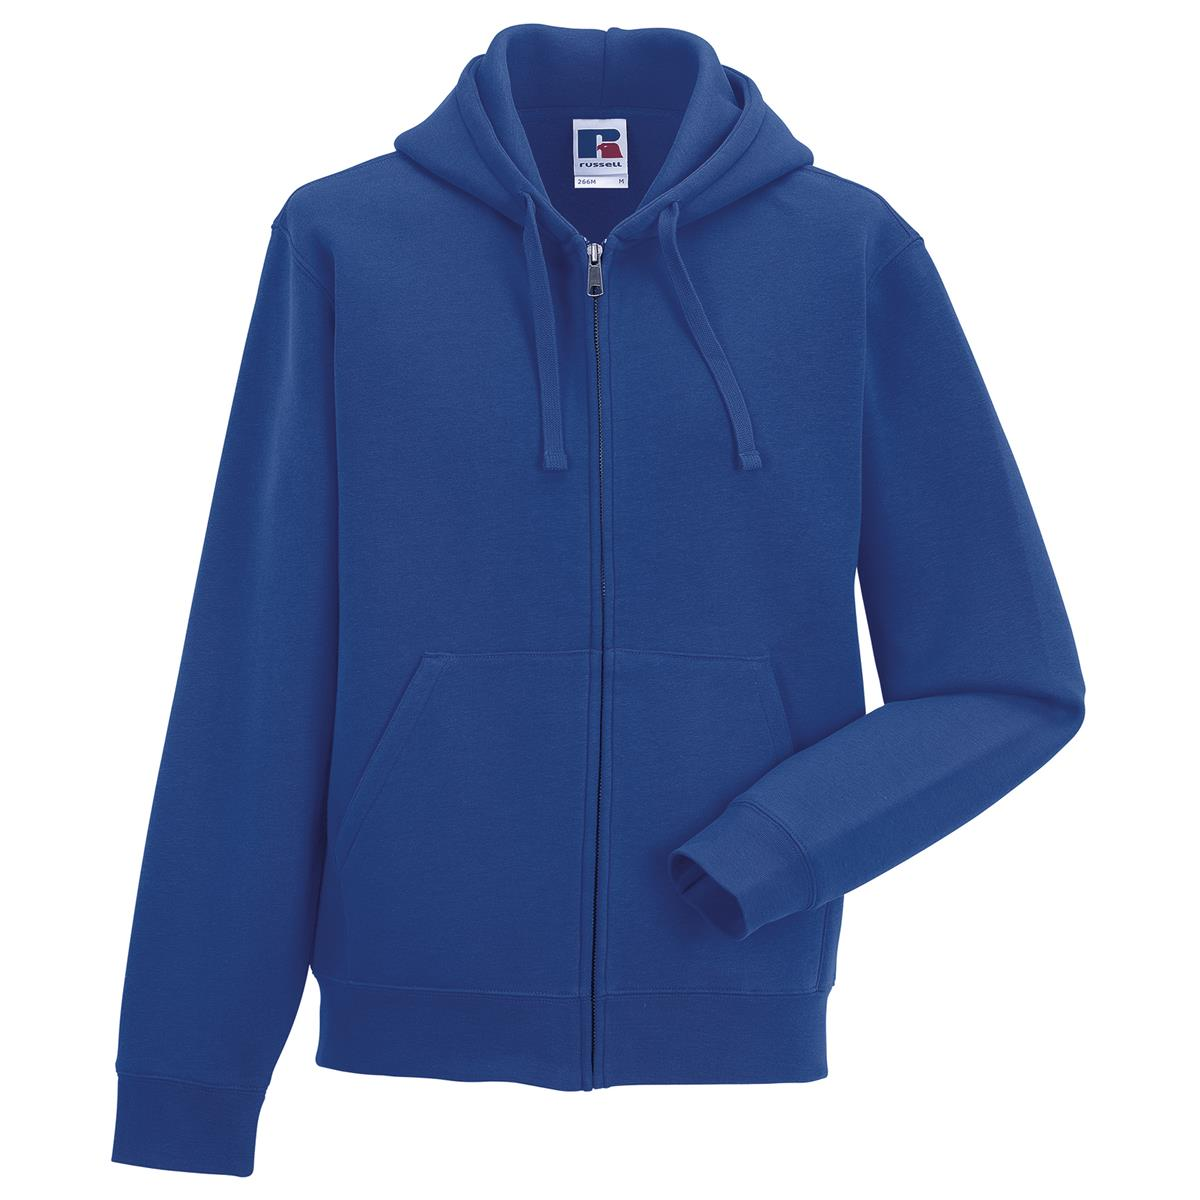 Russell Europe Mens Wear Warm Long Sleeves Authentic Zipped Hooded Sweat UK